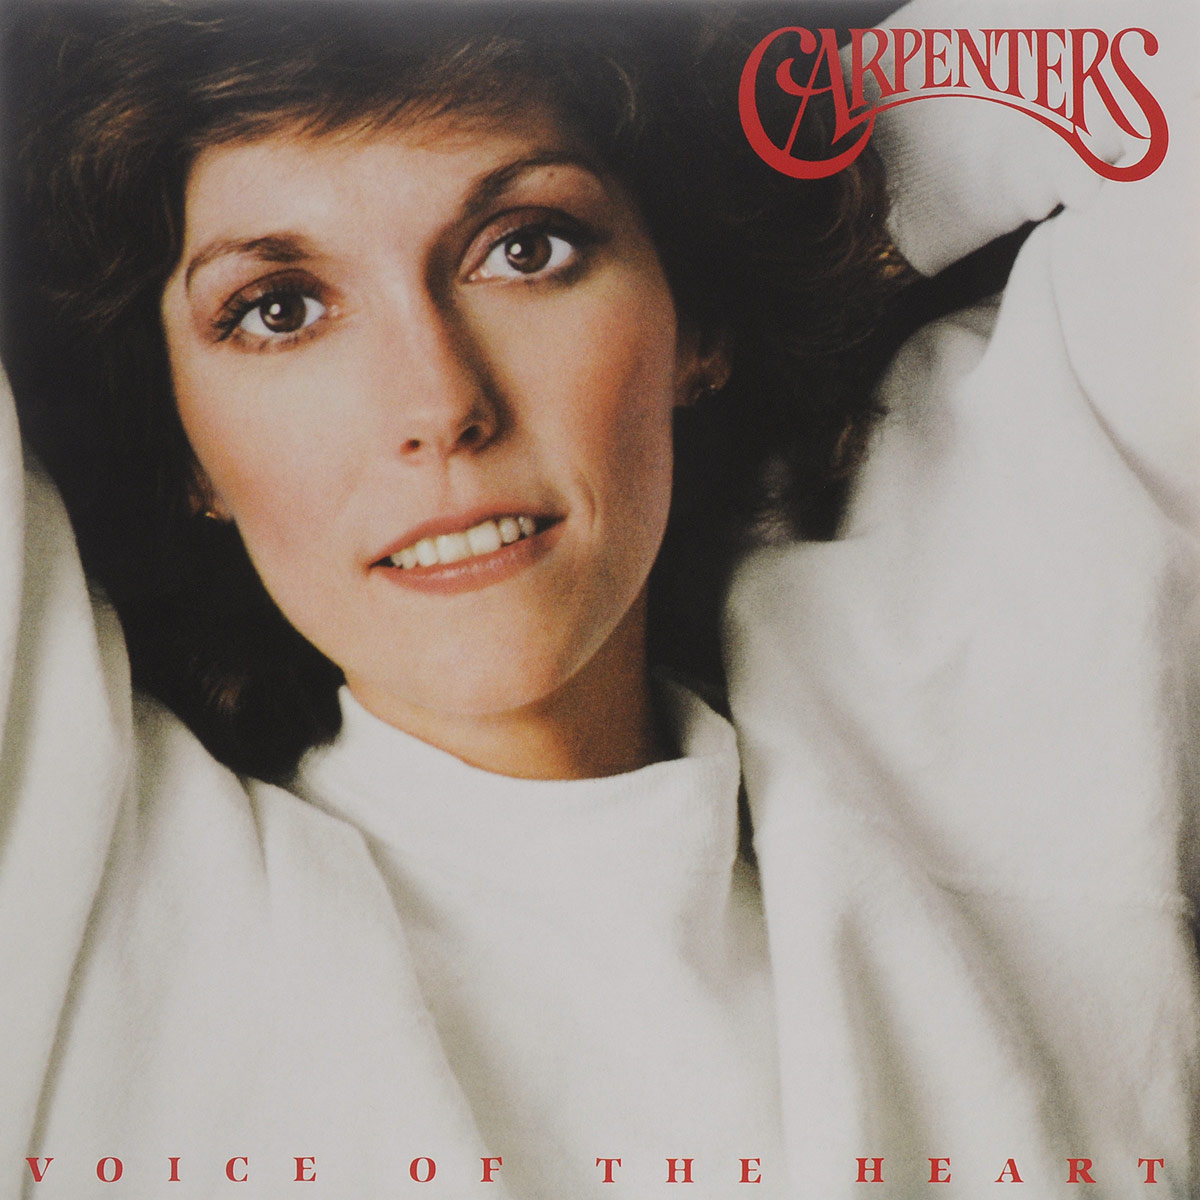 The Carpenters Carpenters. Voice Of The Heart (LP) the carpenters carpenters now